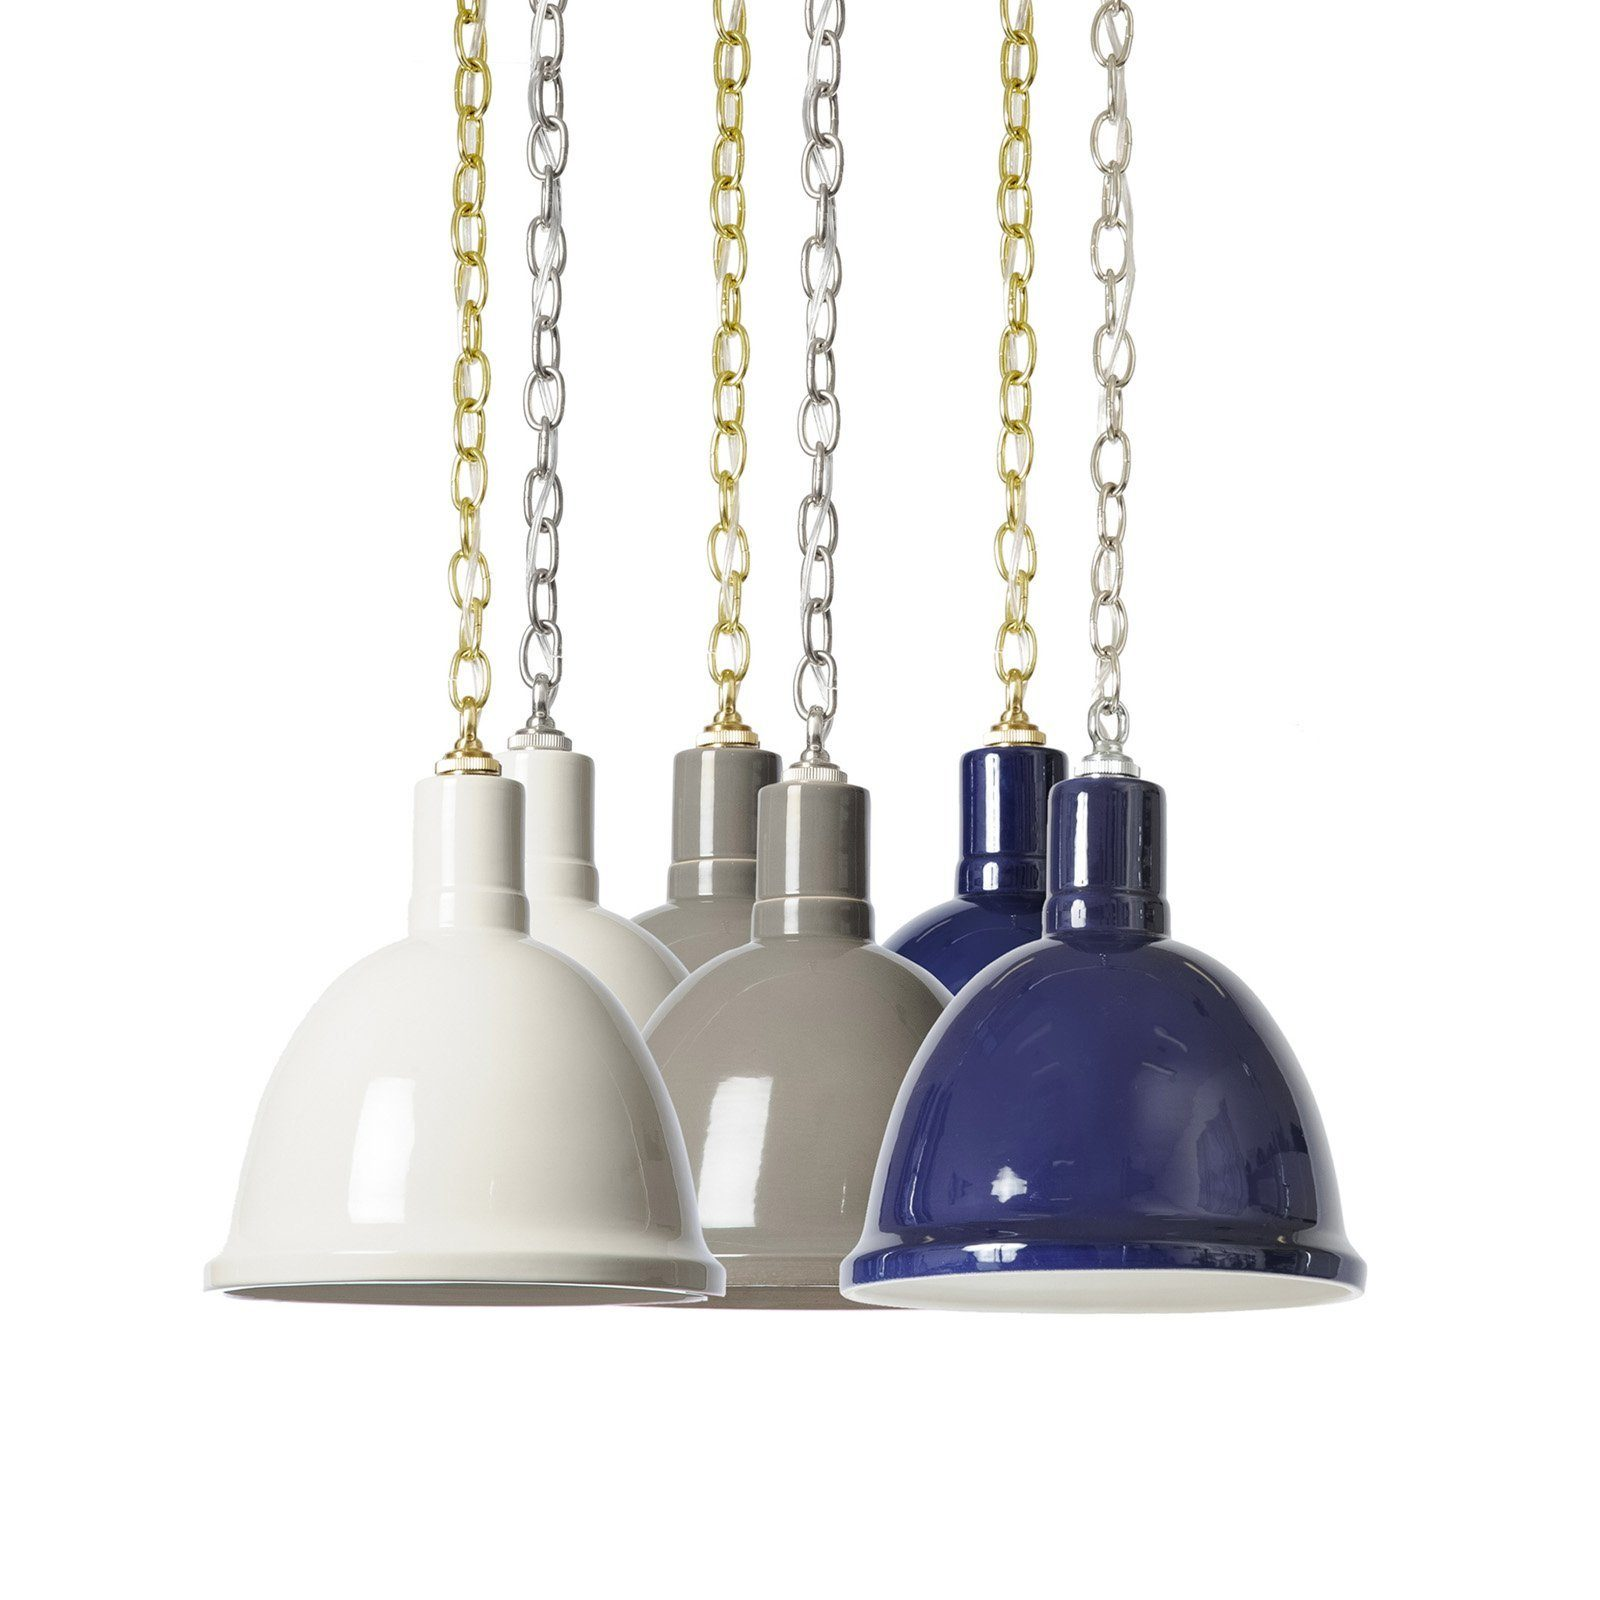 Navy clay dome pendant lighting pendant navy clay dome pendant mozeypictures Images